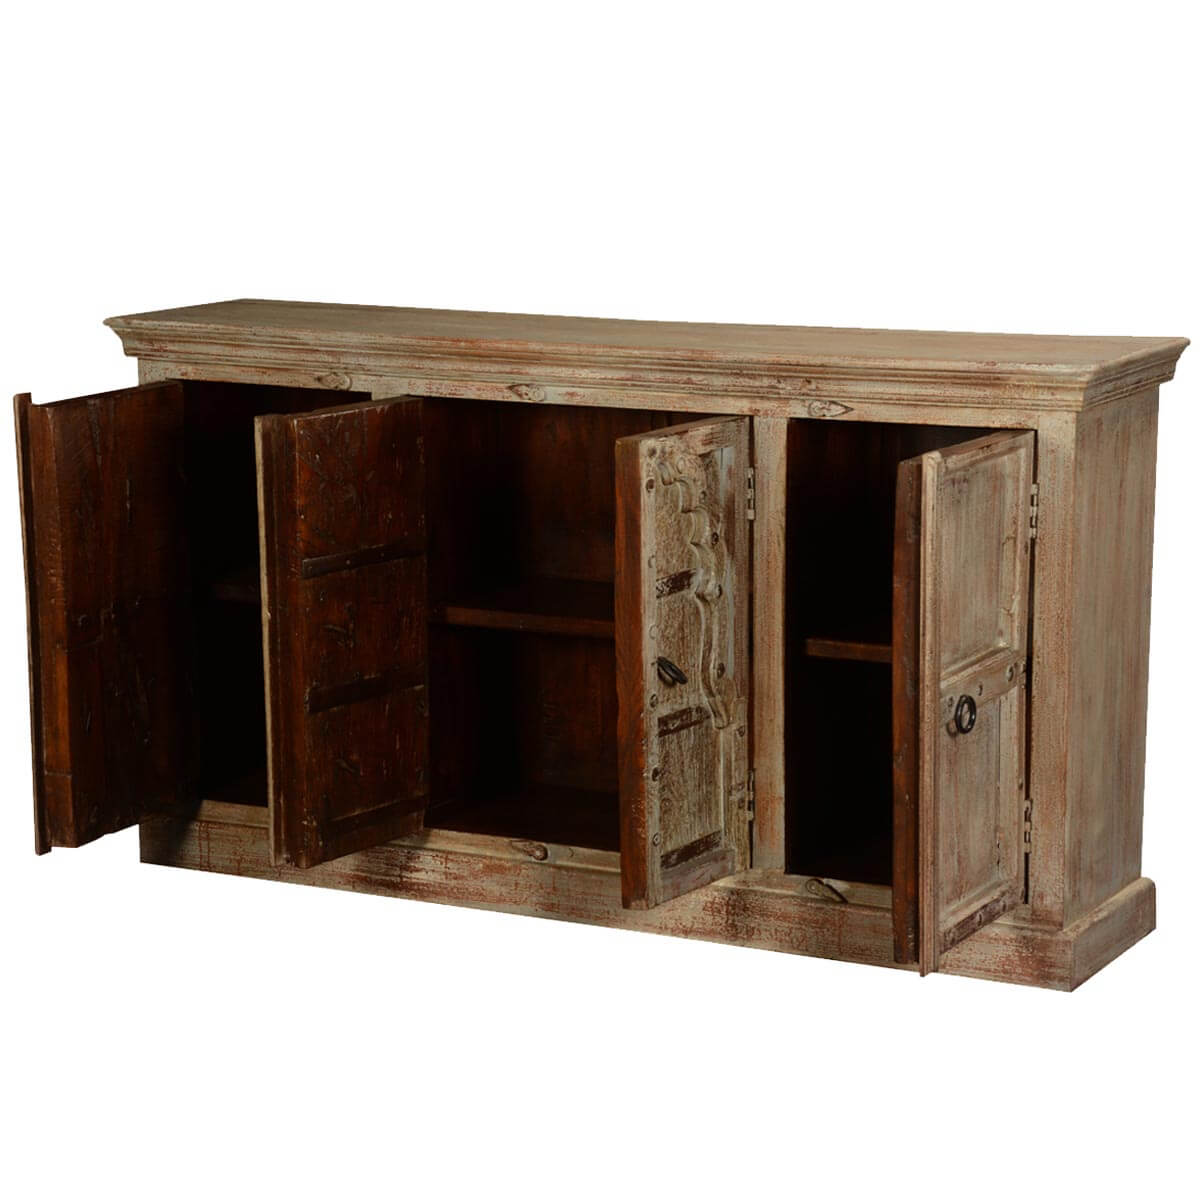 Antique White Gothic Doors Reclaimed Wood Sideboard Cabinet